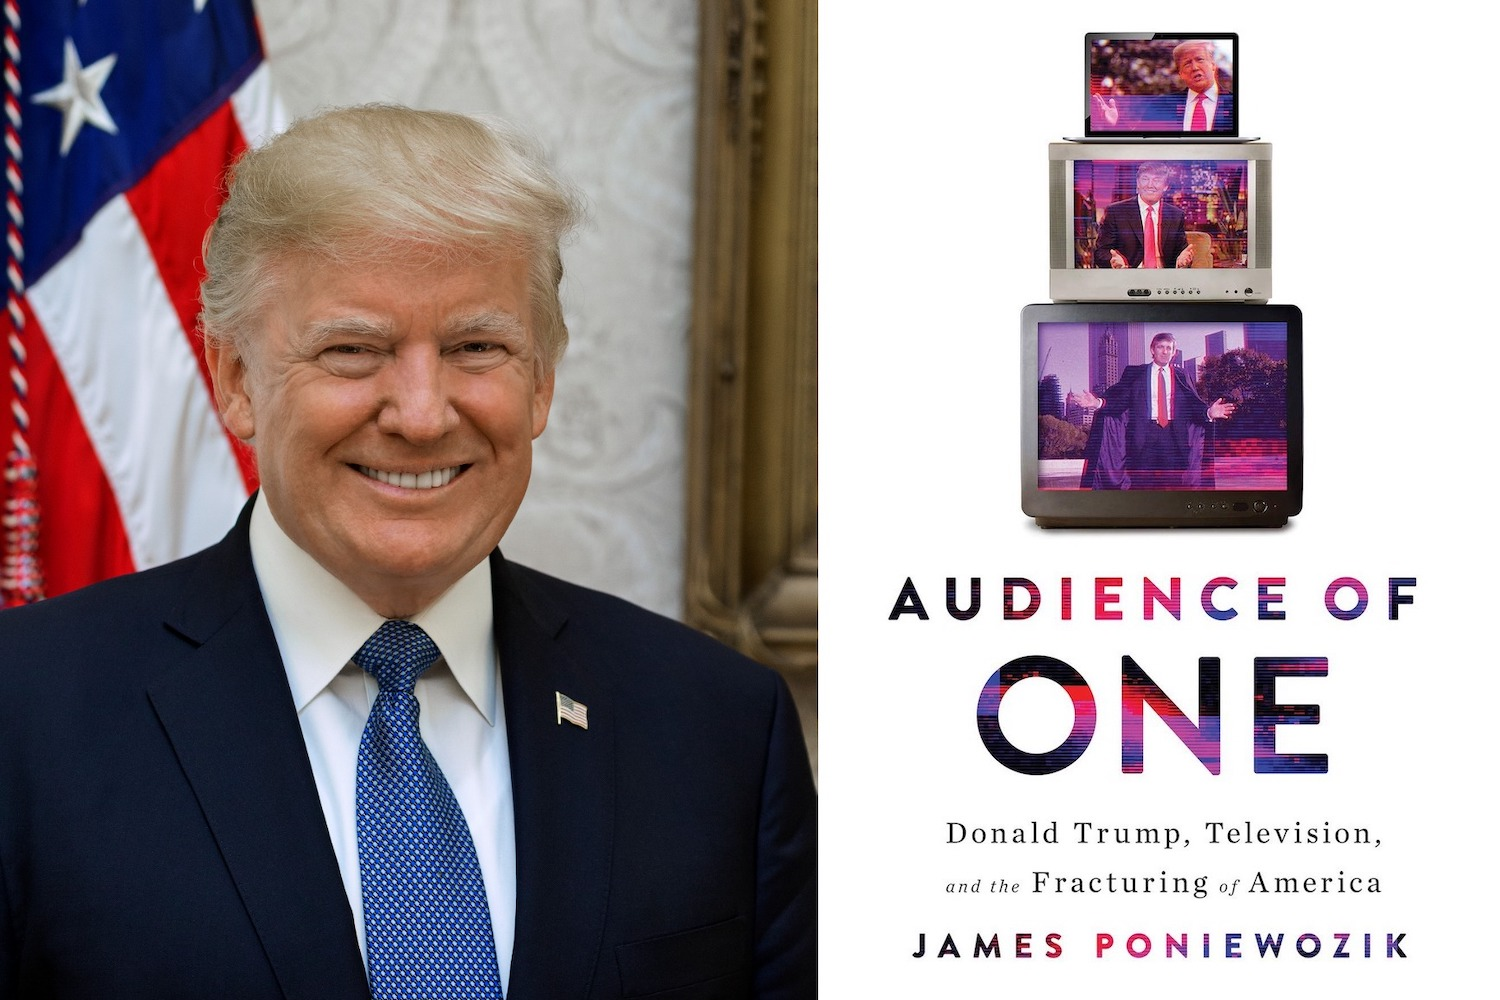 Book Explains How Cable TV, Trump's Presidency Unquestionably Tied Together